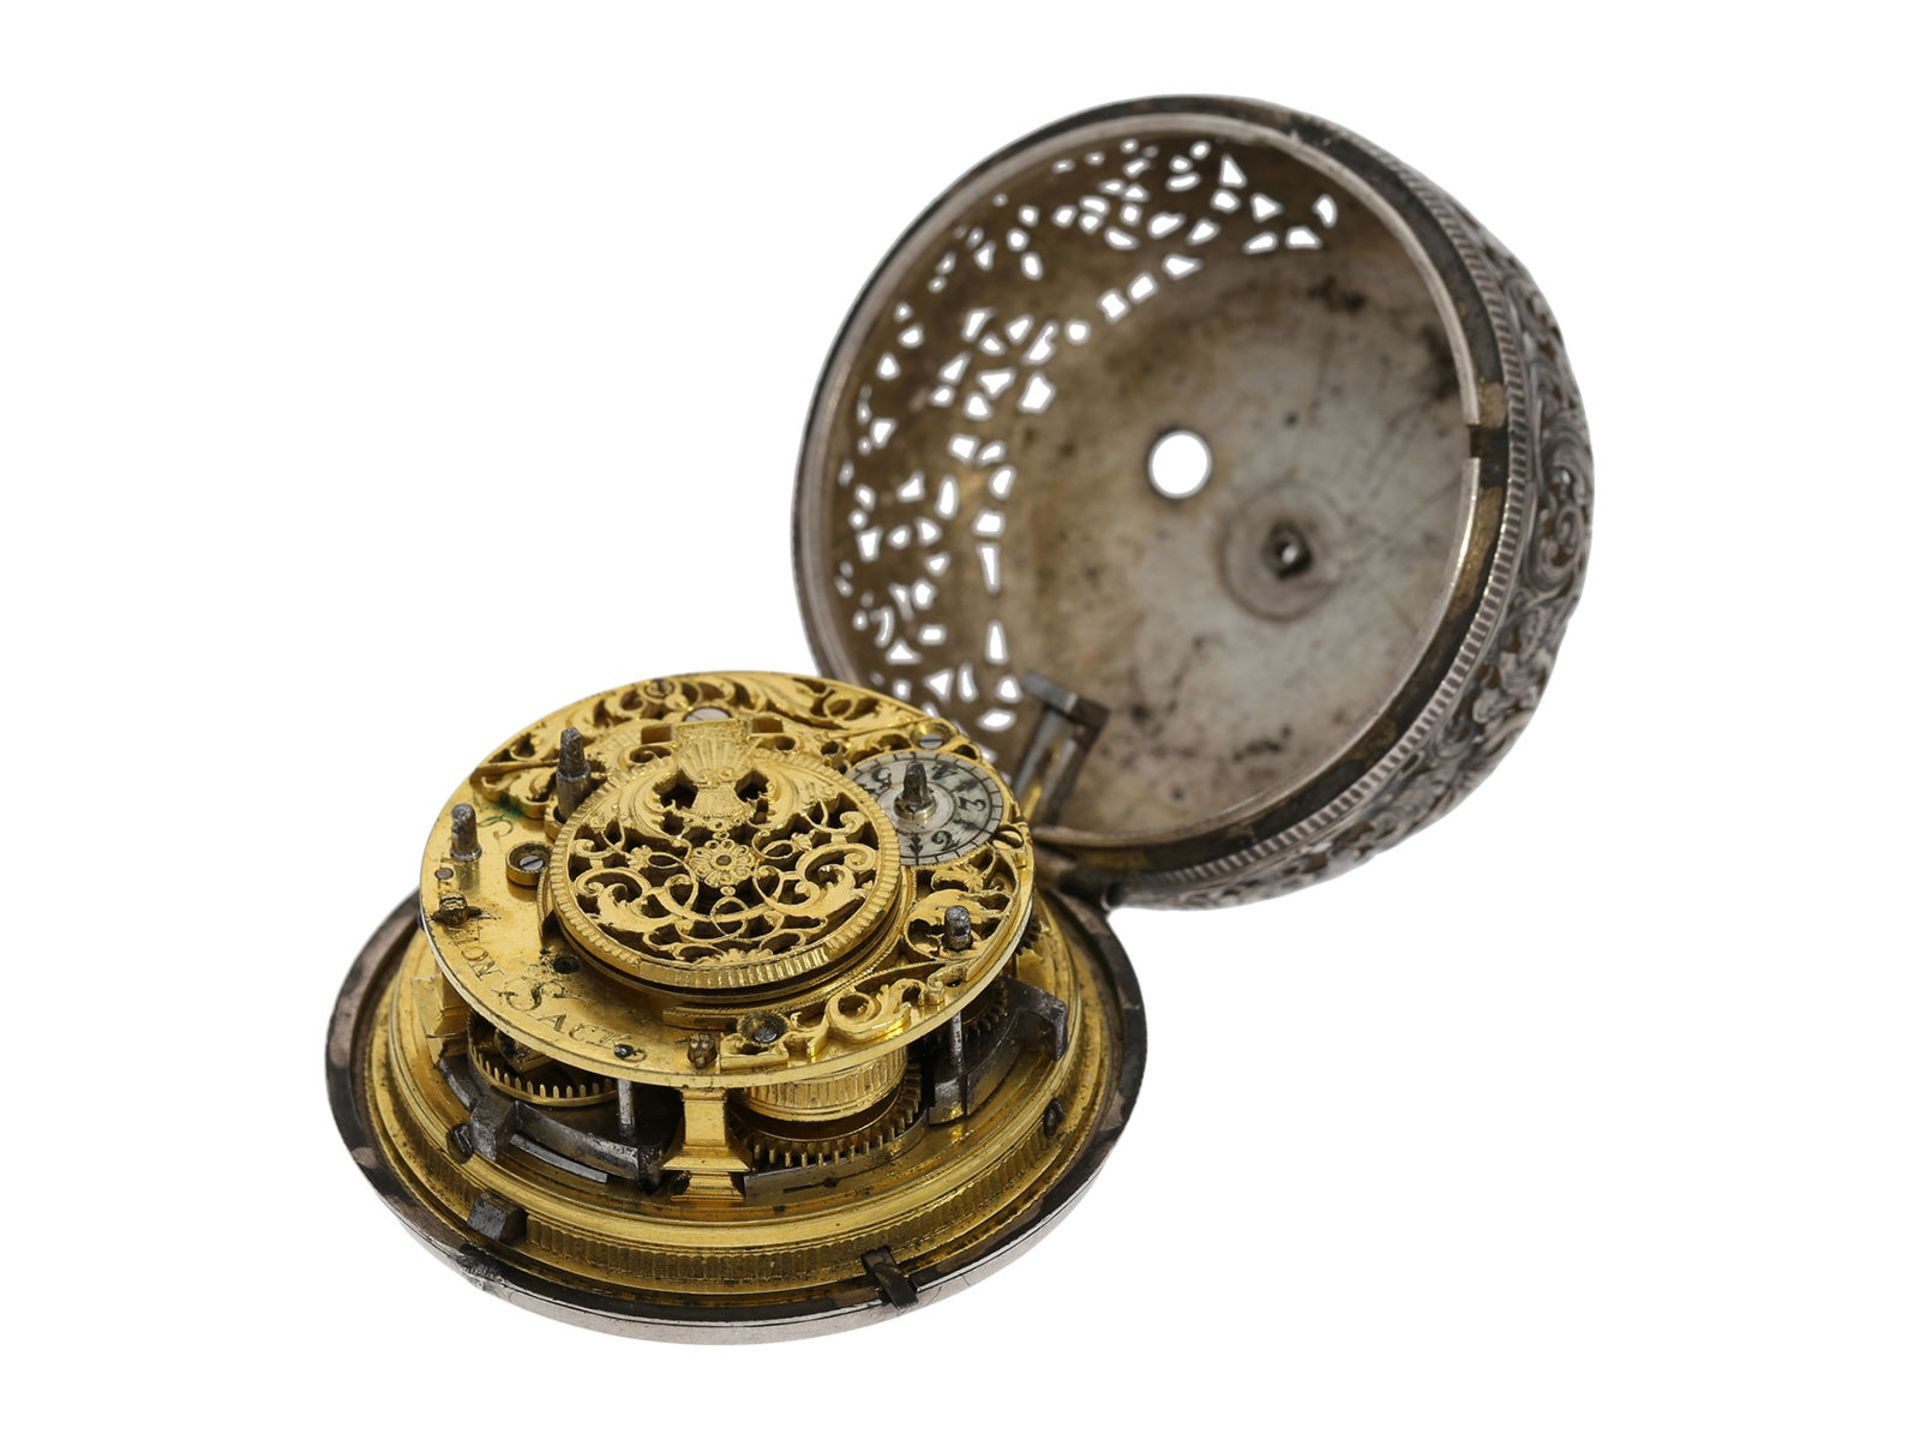 Pocket watch: Augsburg pair case repousse verge watch with relief case in exceptional quality and - Bild 9 aus 14